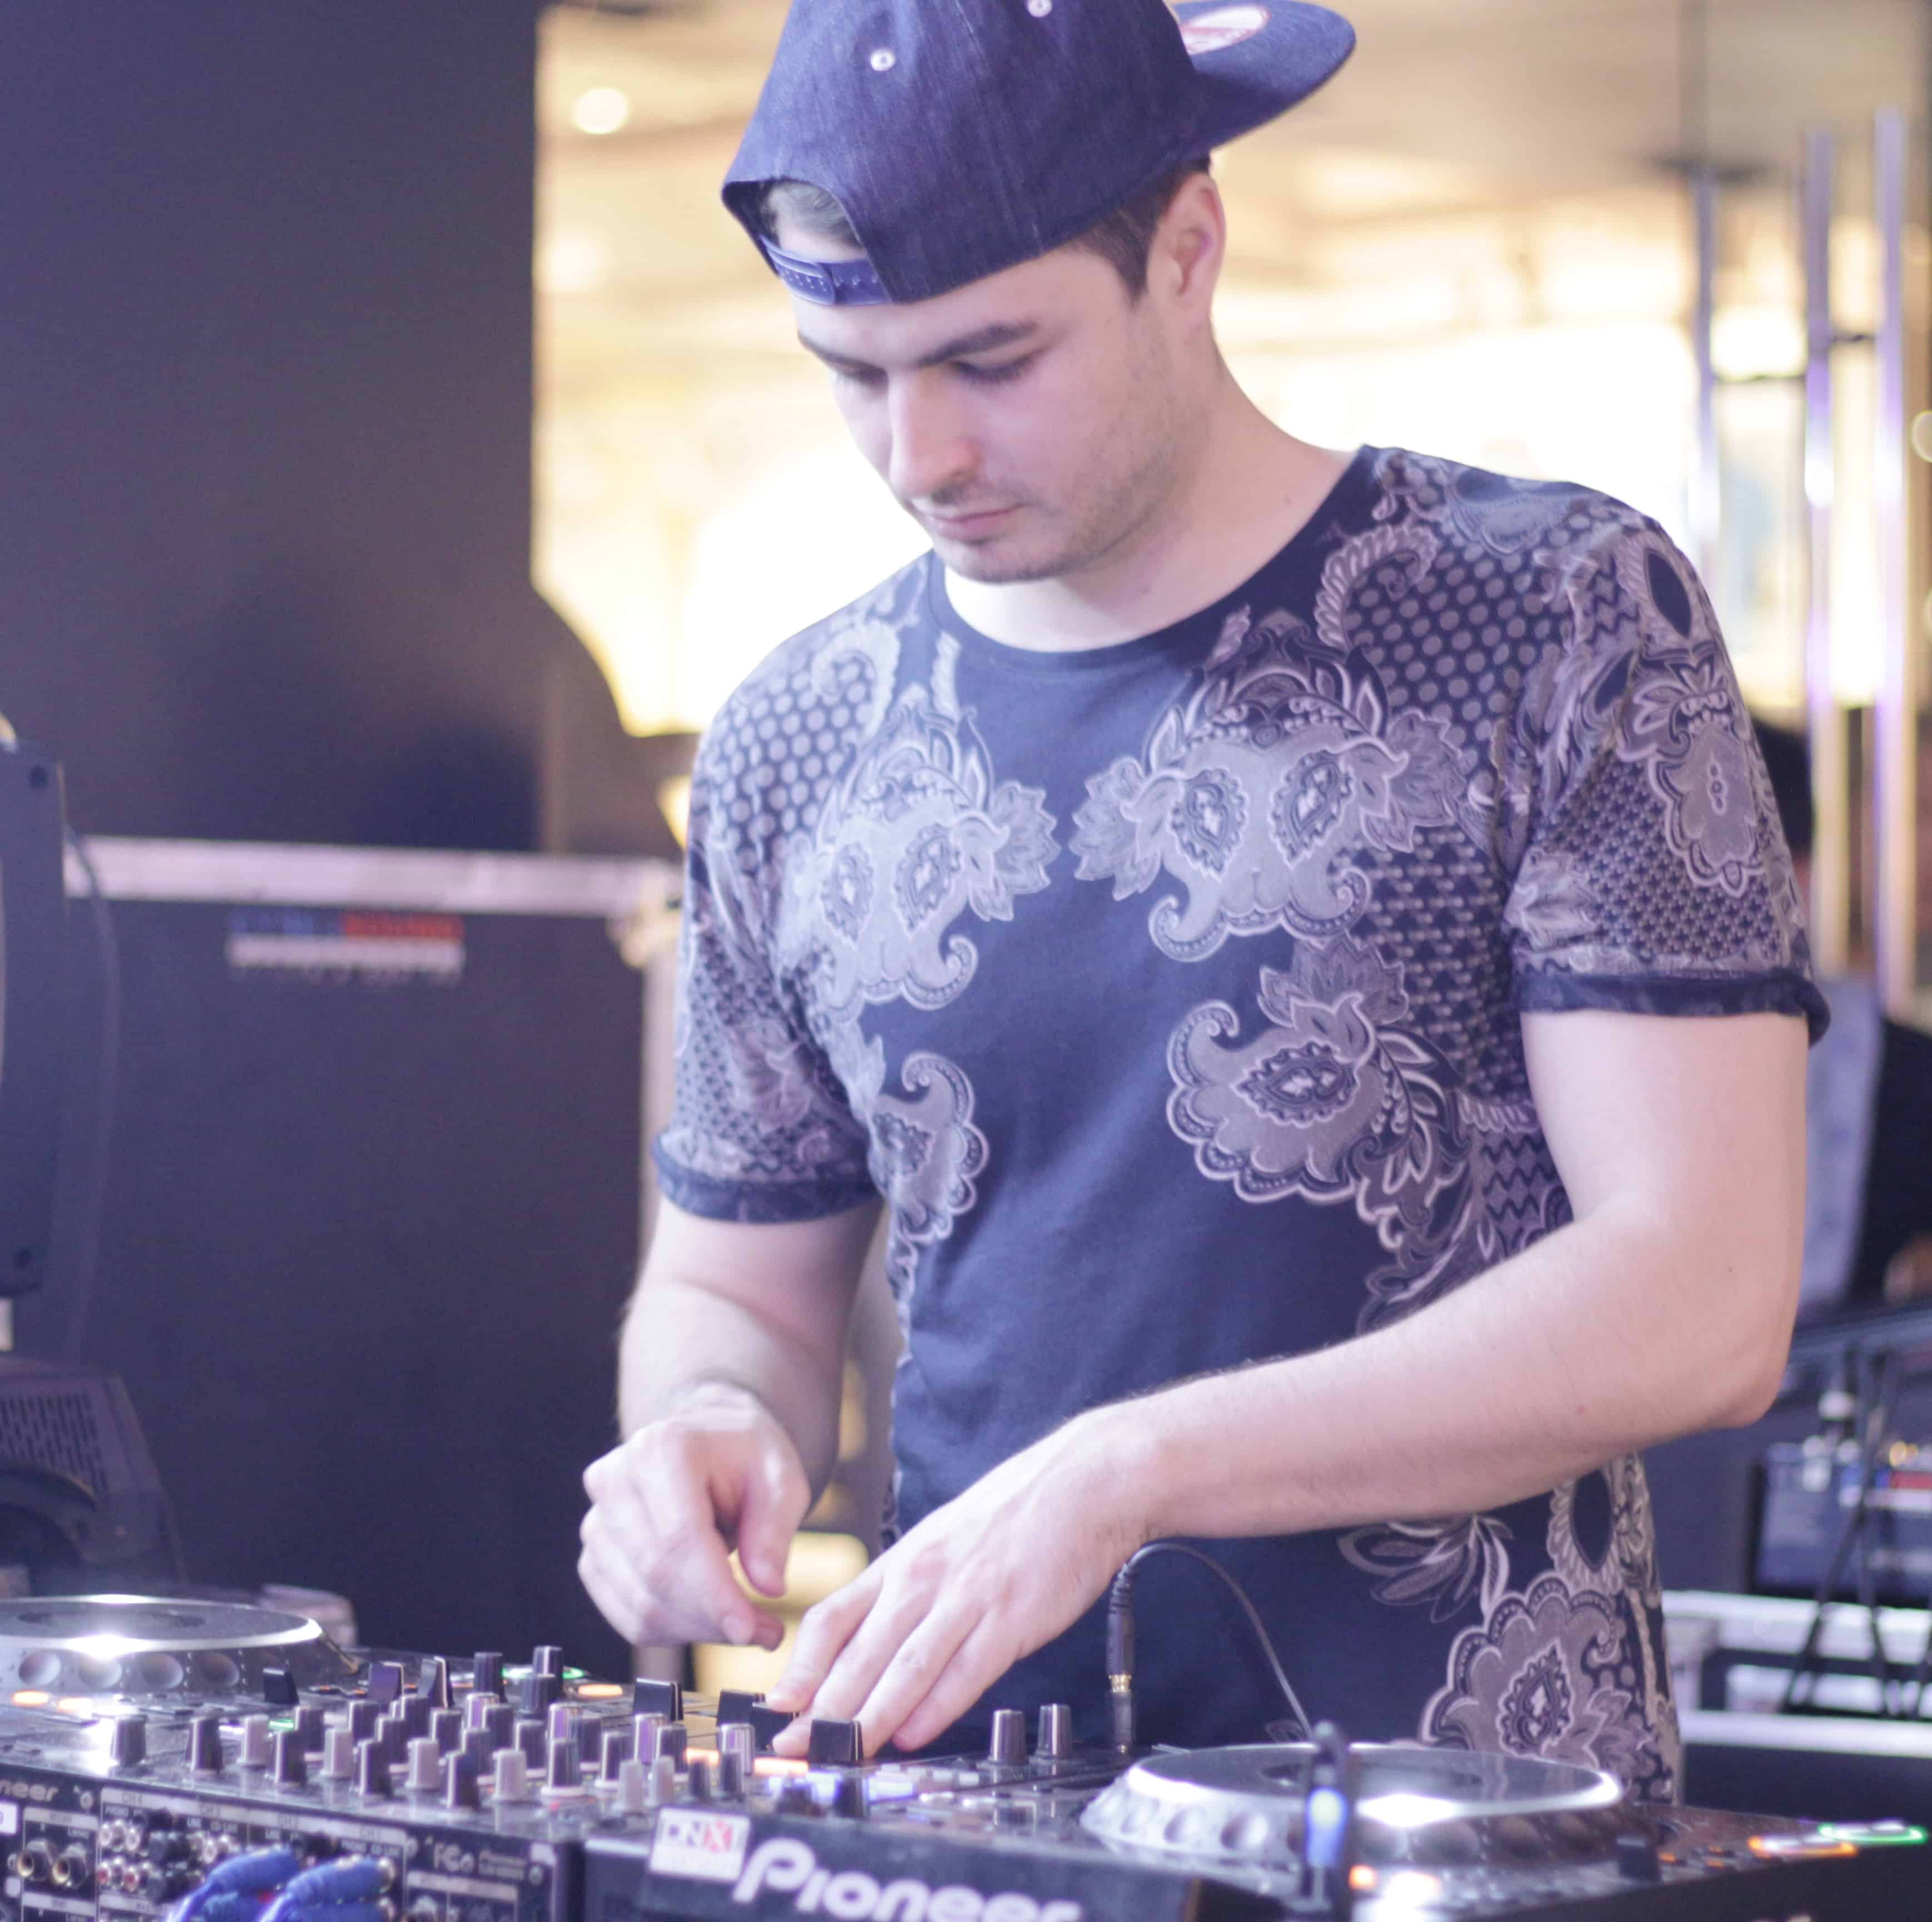 DJ of the event